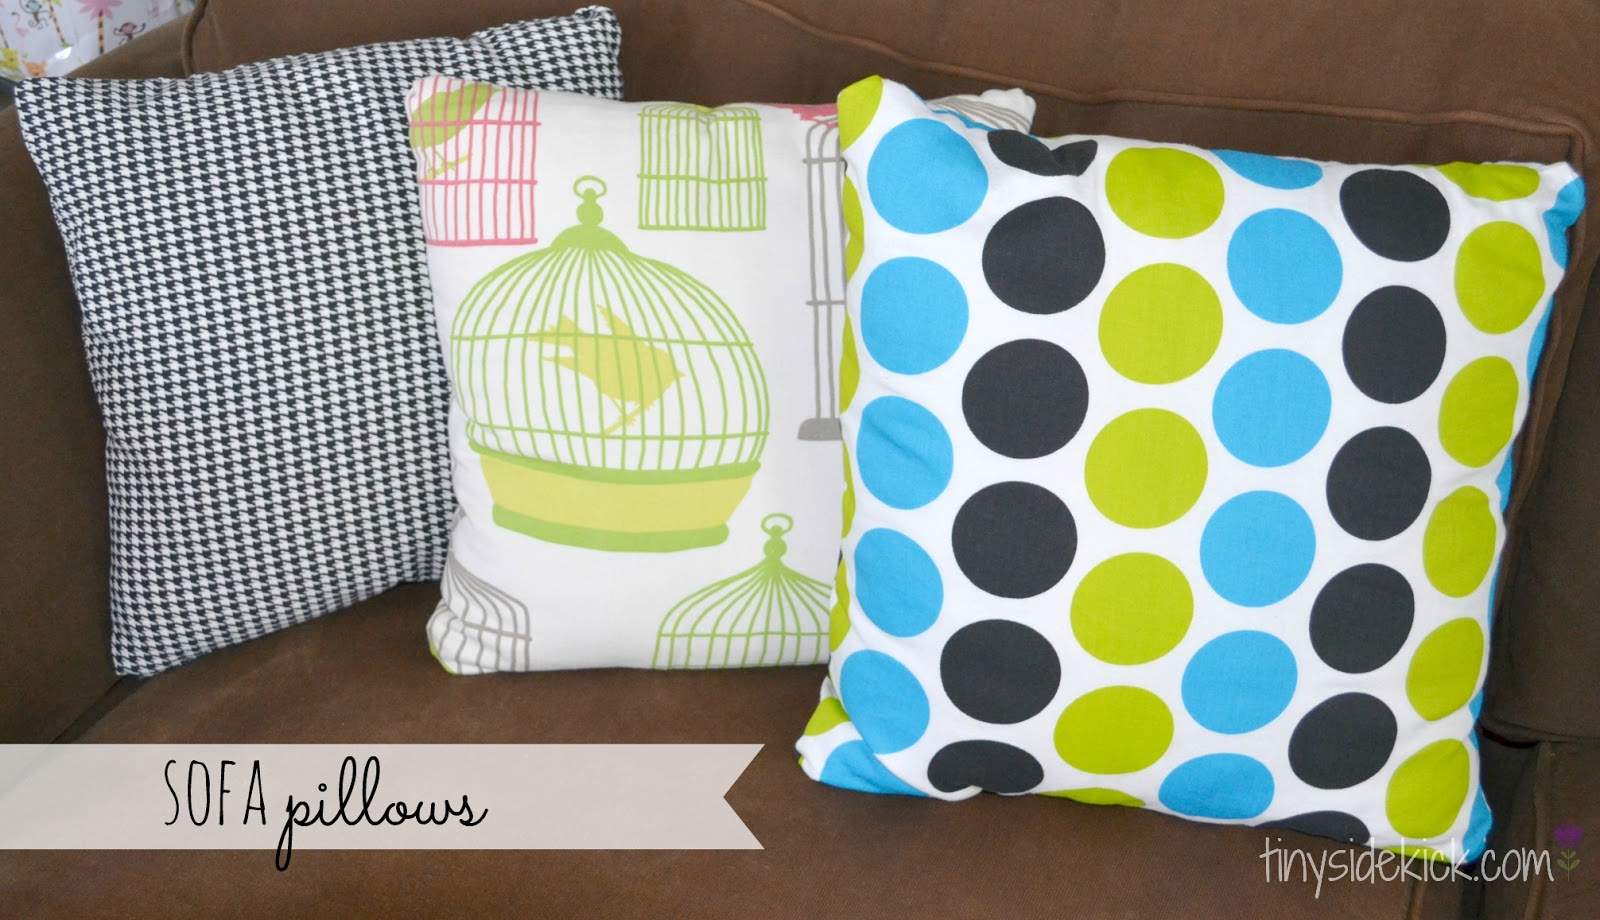 Diy Throw Pillows With Zipper: DIY Zippered Pillow Covers   Install a zipper   washable pillow covers,